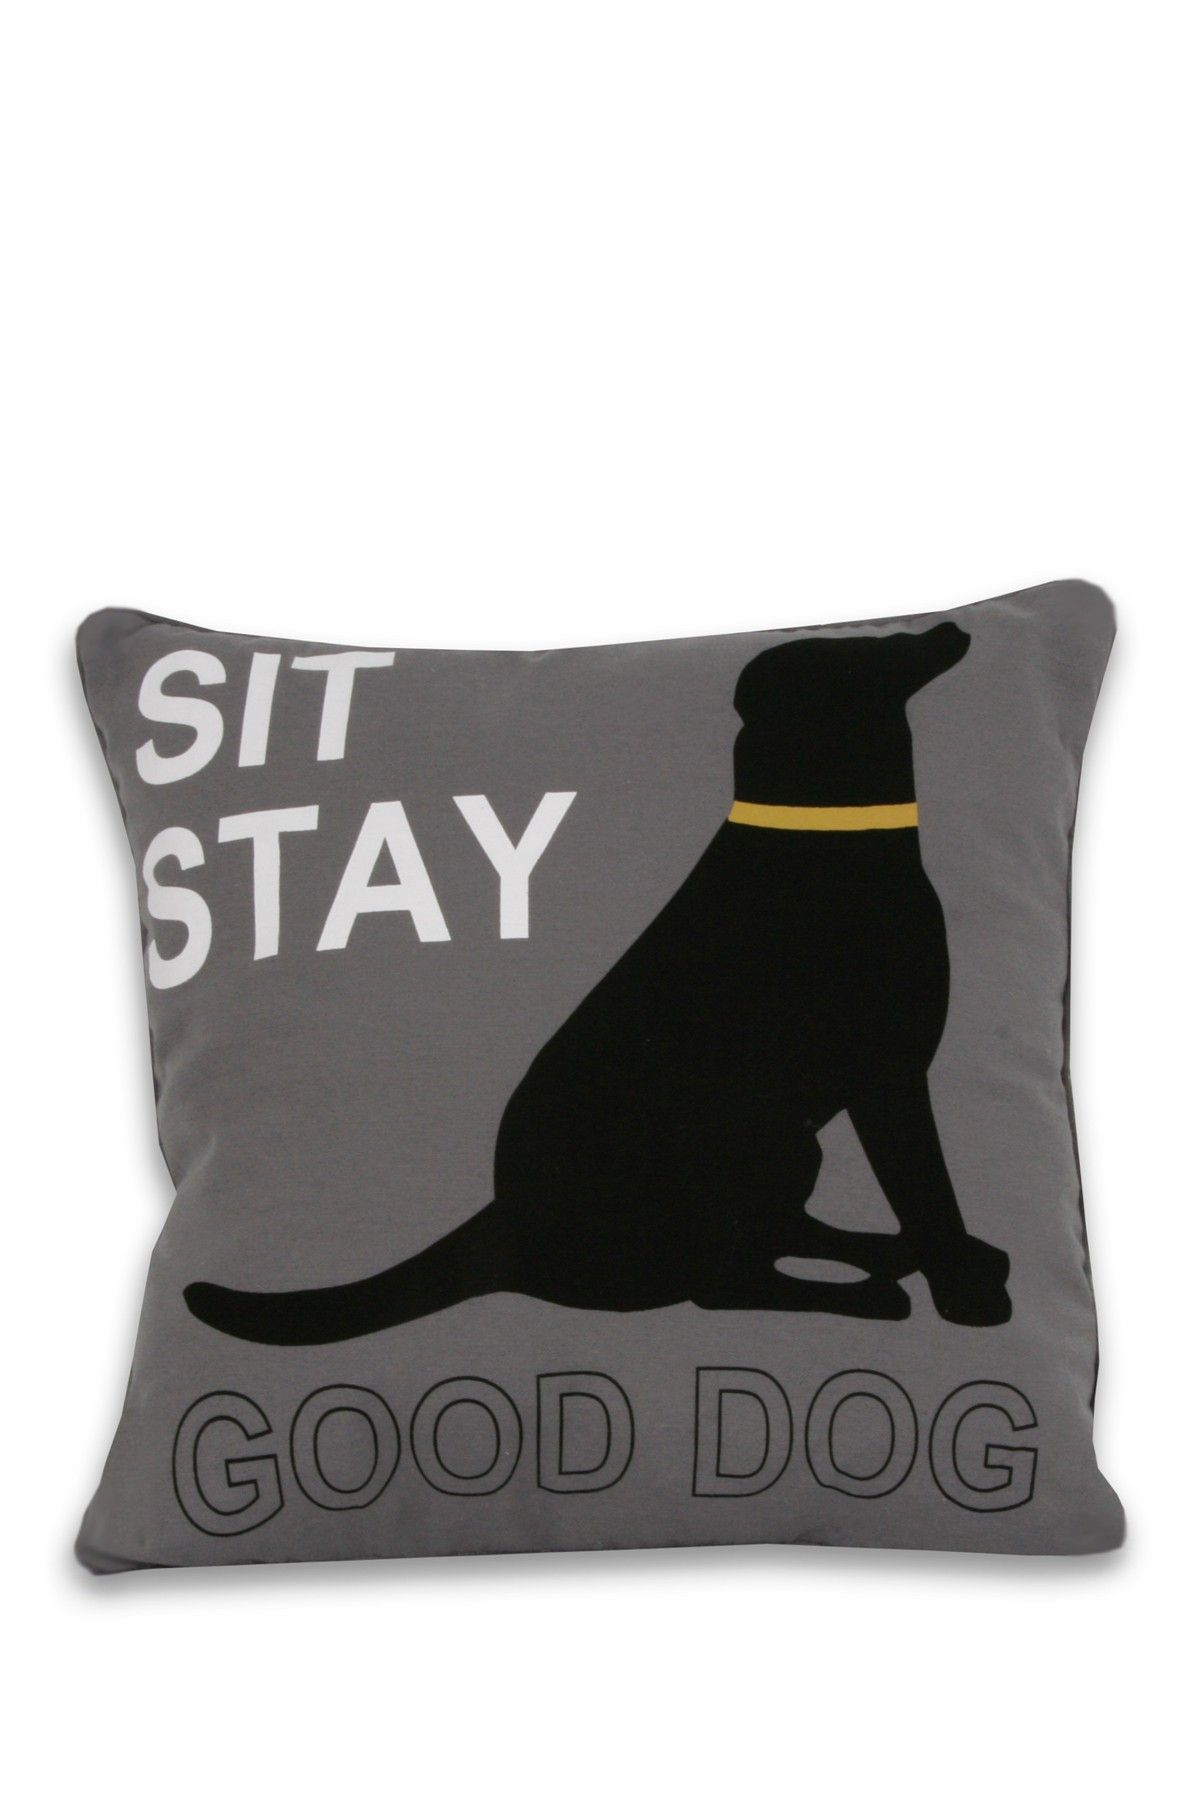 Good Dog Pillow With Contrast Welt Dog Pillow Dogs Best Dogs